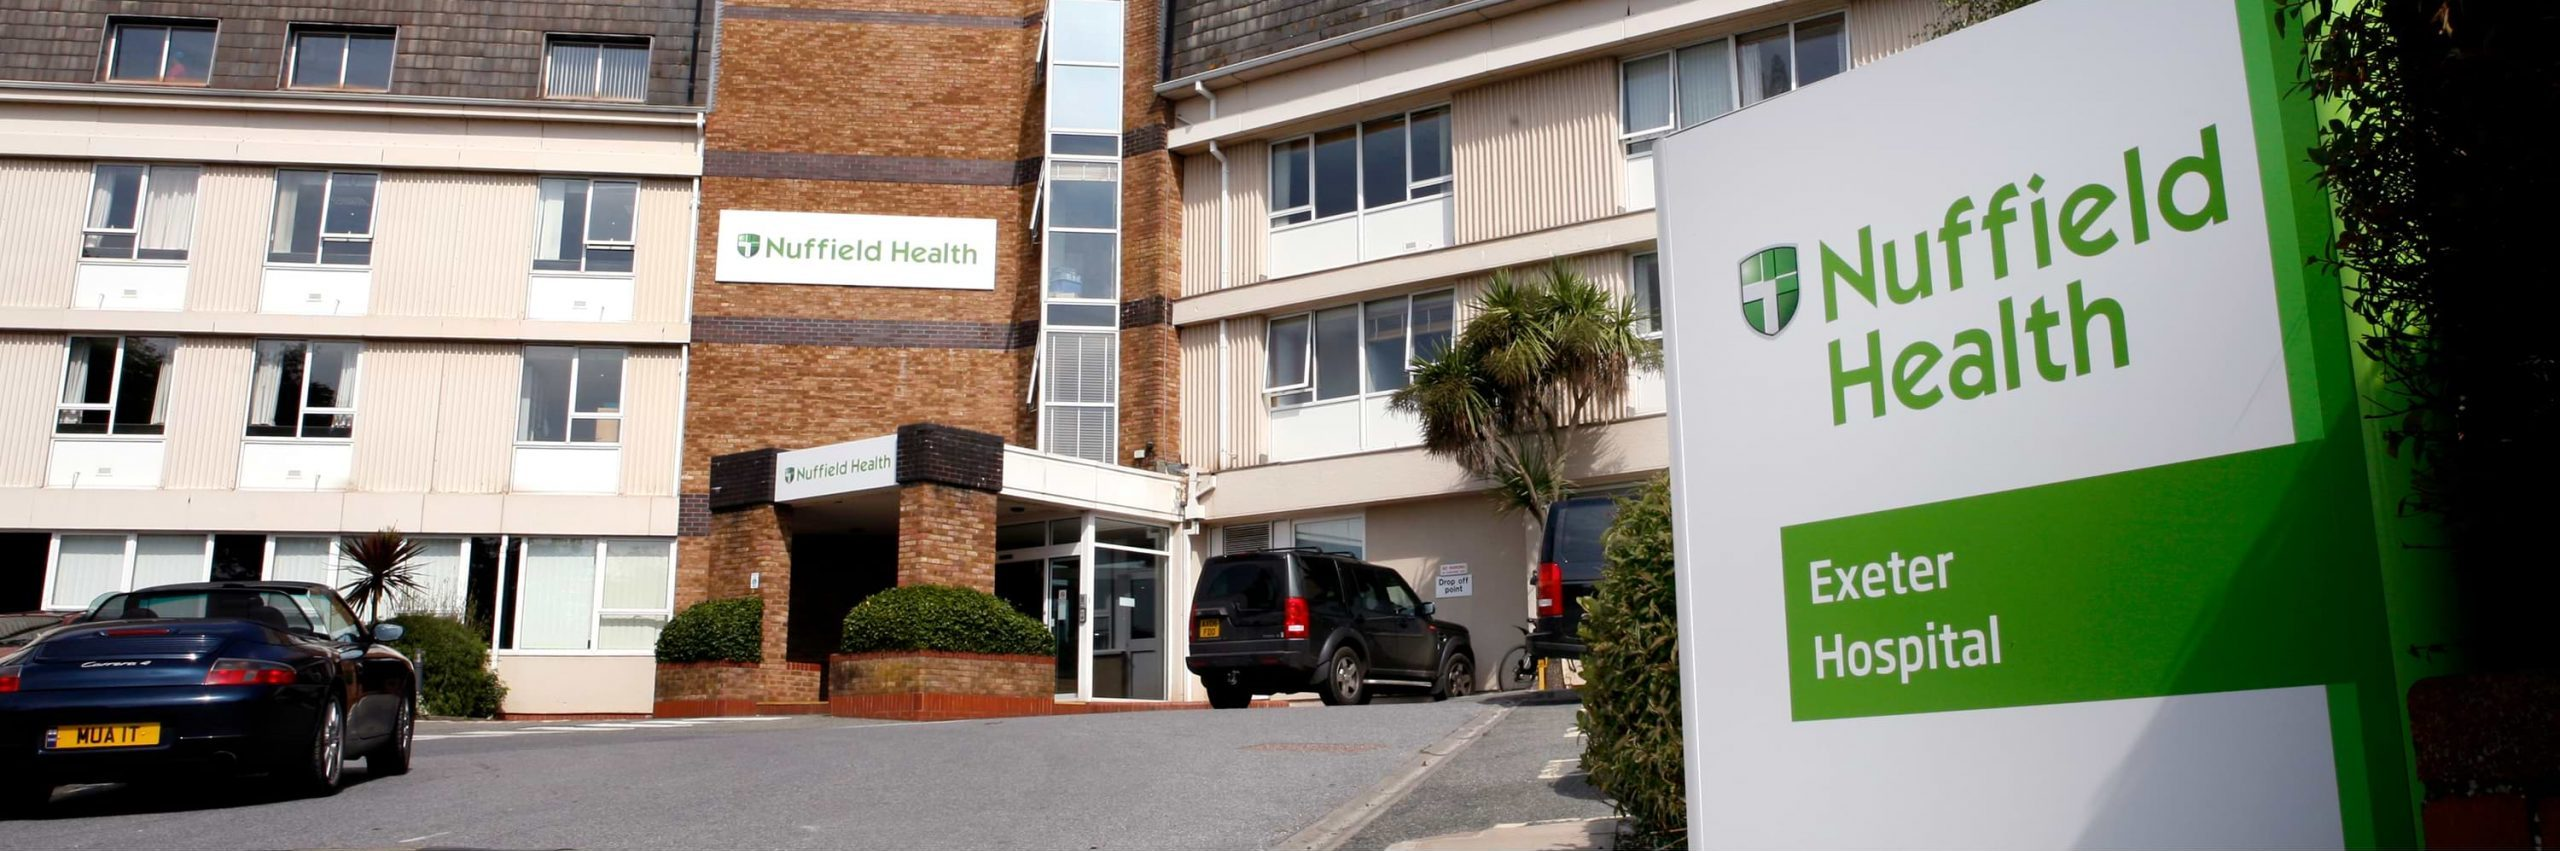 Dermatology appointments with Dr Chris Bower at Nuffield Health, Exeter, Devon